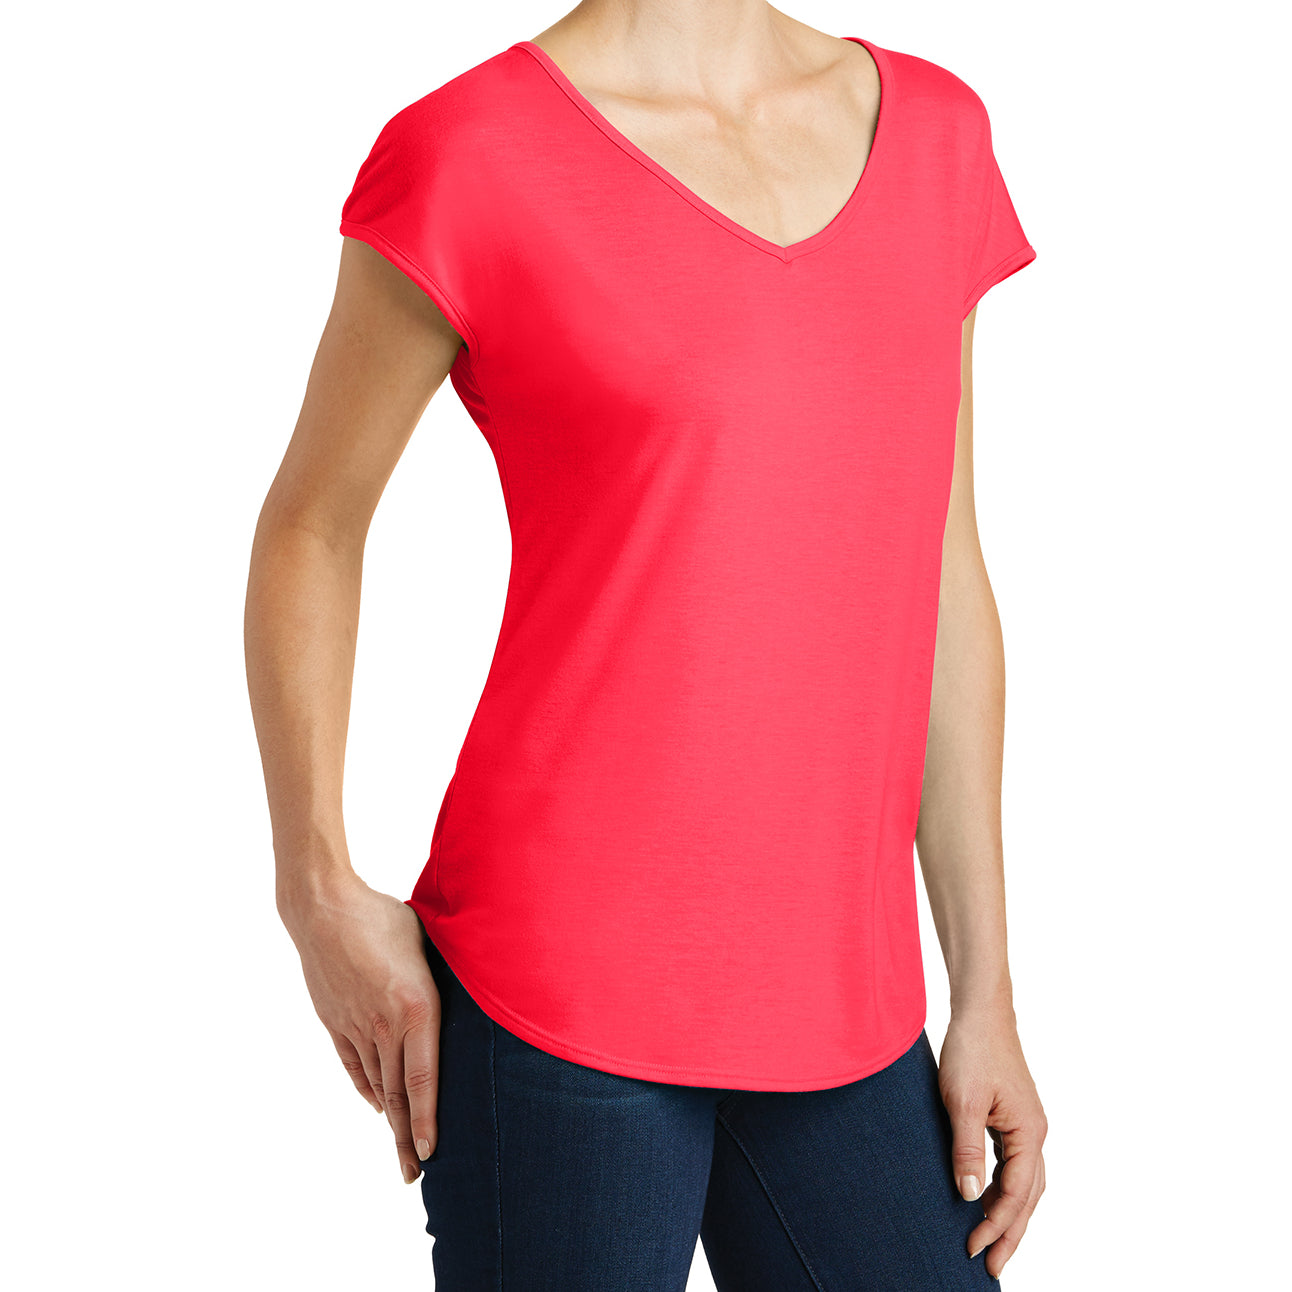 Womens Drapey Cross-Back Tee - Hot Coral - Side